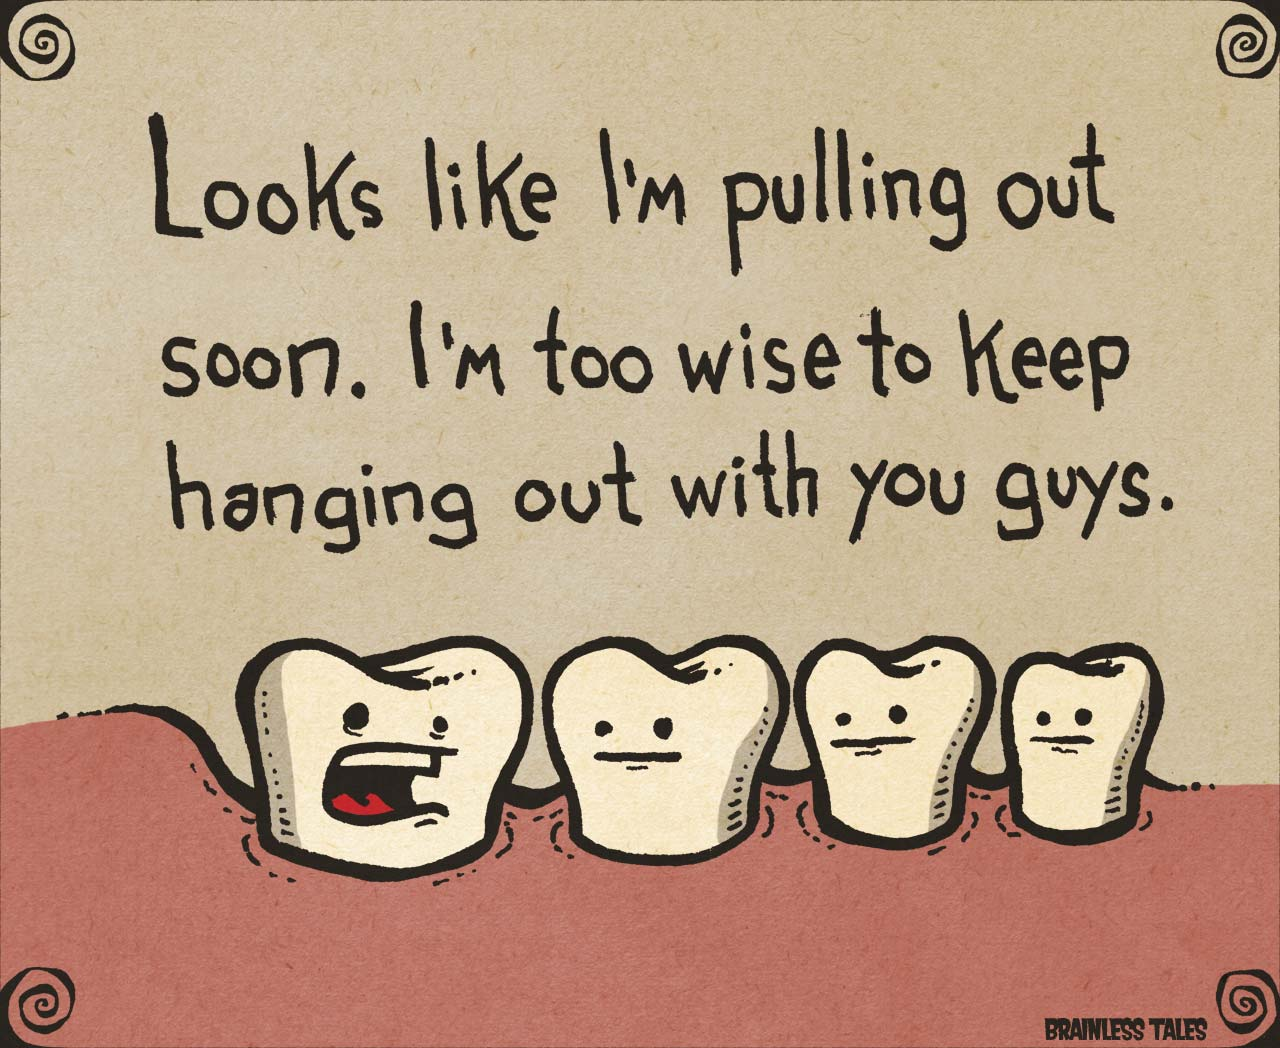 Wisdom Gained Trough Wisdom Tooth Extraction?